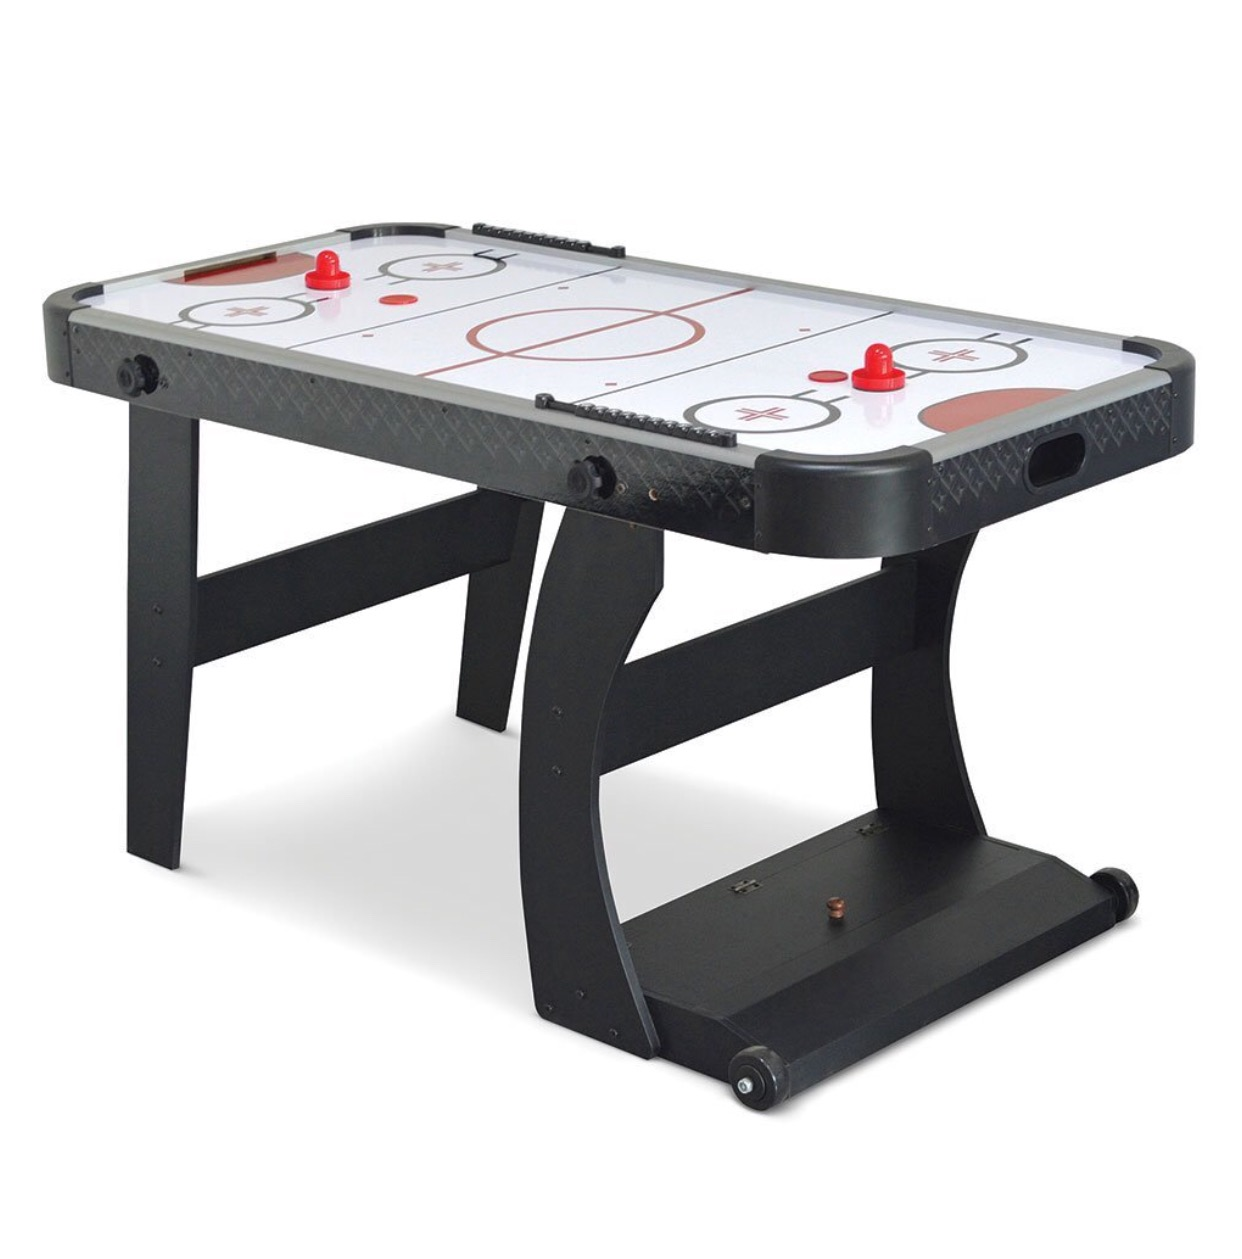 2 Player Air Hockey Rental Florida - Bir